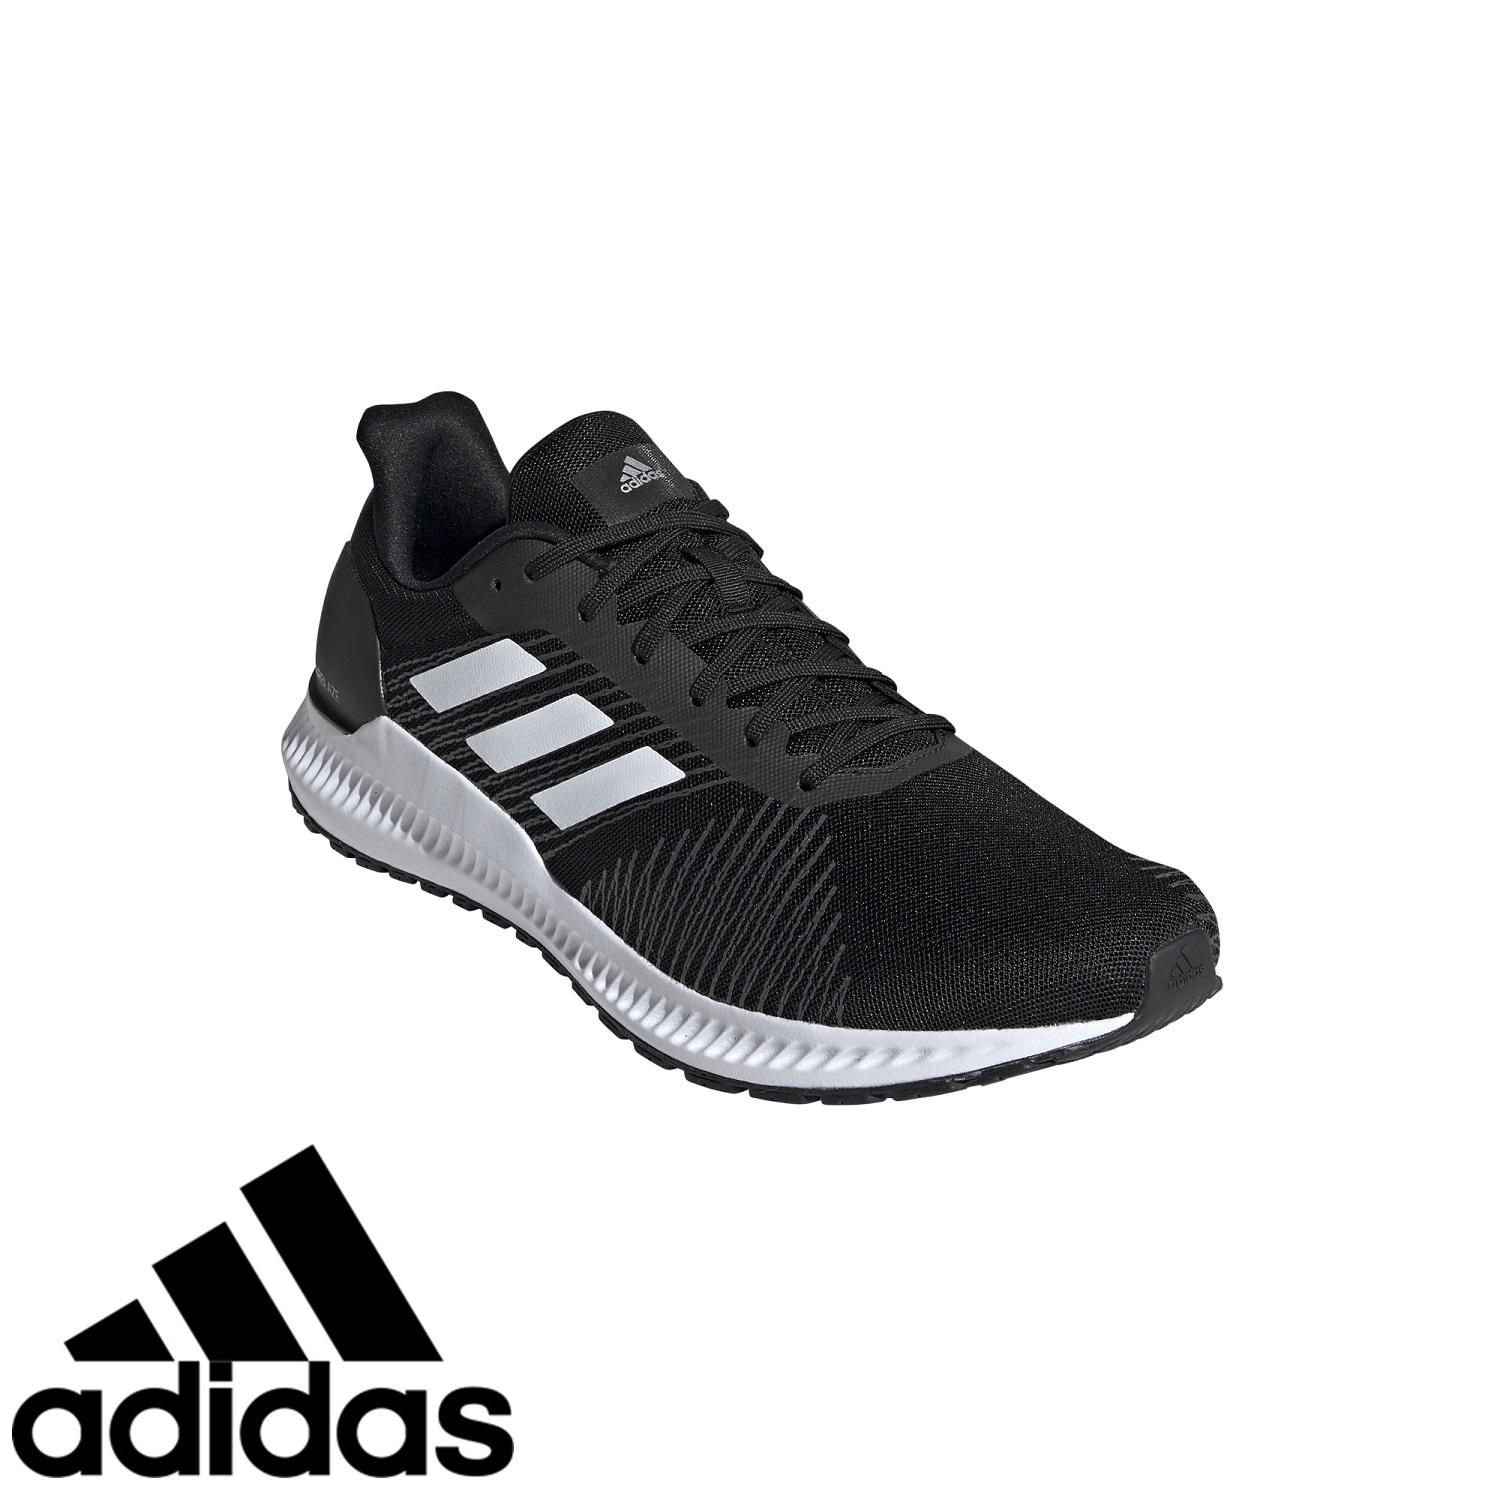 0eb789ab4e487 Adidas Sports Shoes Philippines - Adidas Sports Clothing for sale ...